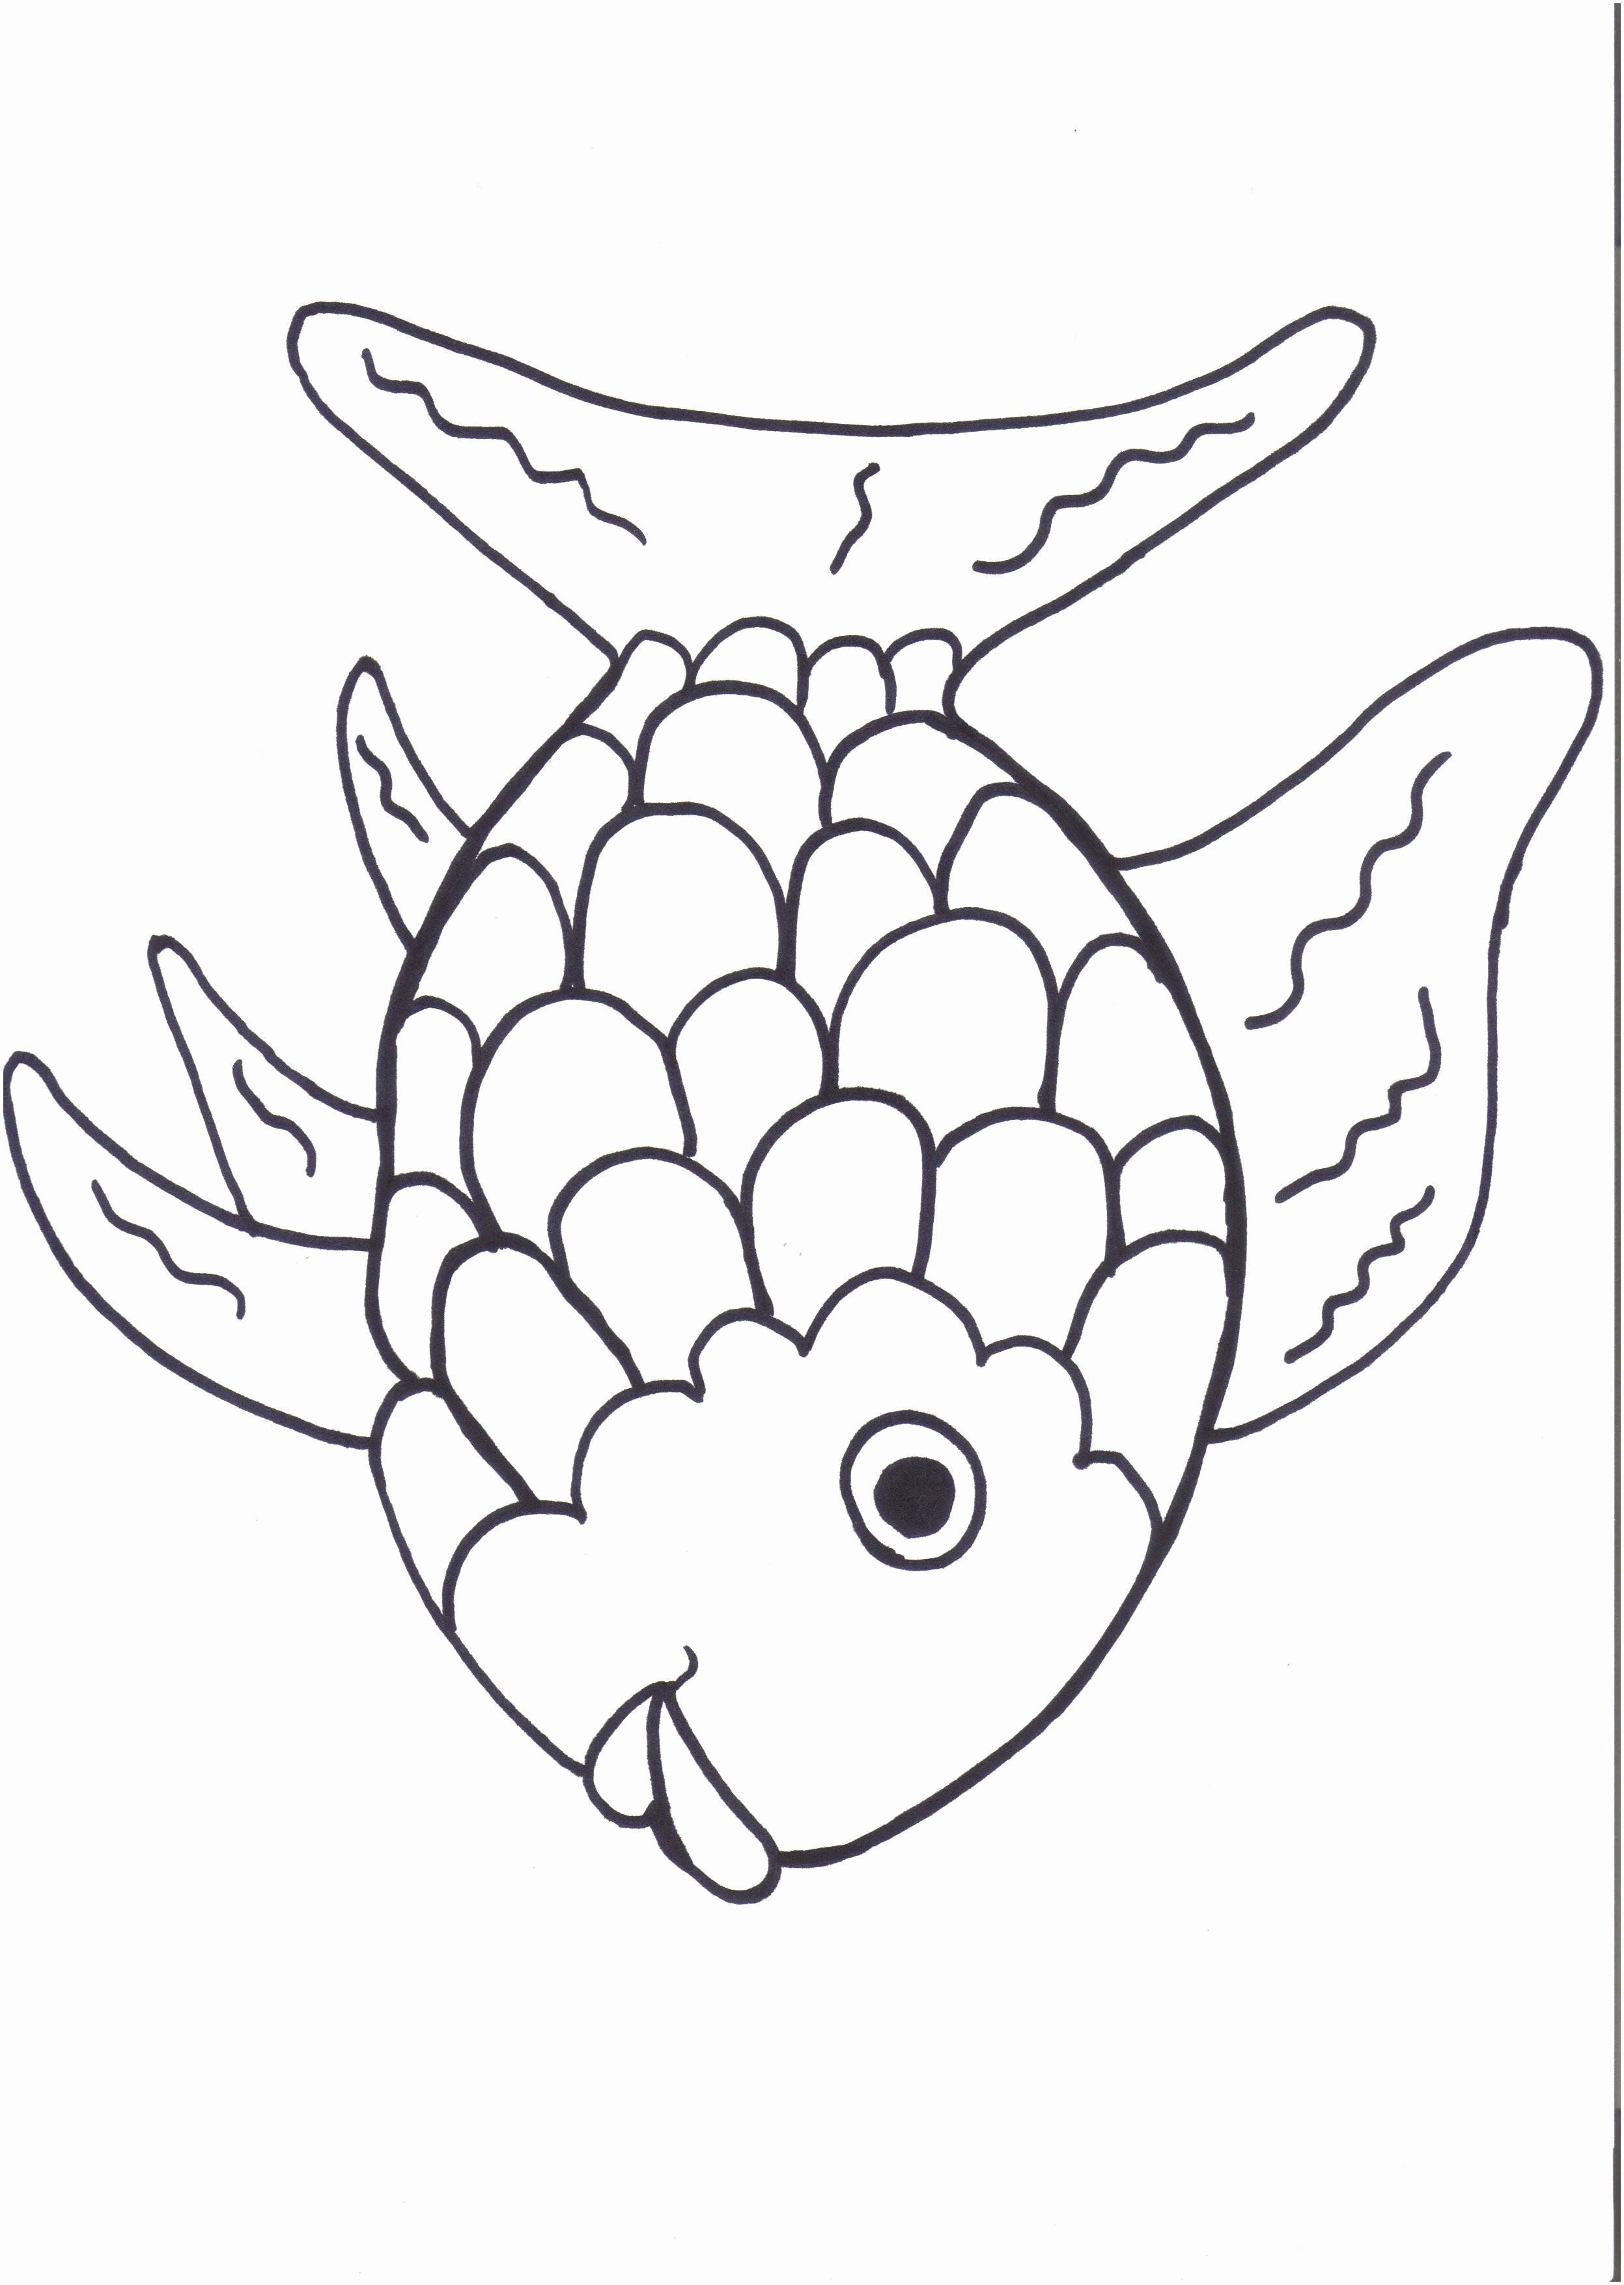 Maine State Flower Coloring Page Fresh Best Free Coloring Pages Rainbow Rainbow Fish Coloring Page Rainbow Fish Crafts Fish Coloring Page